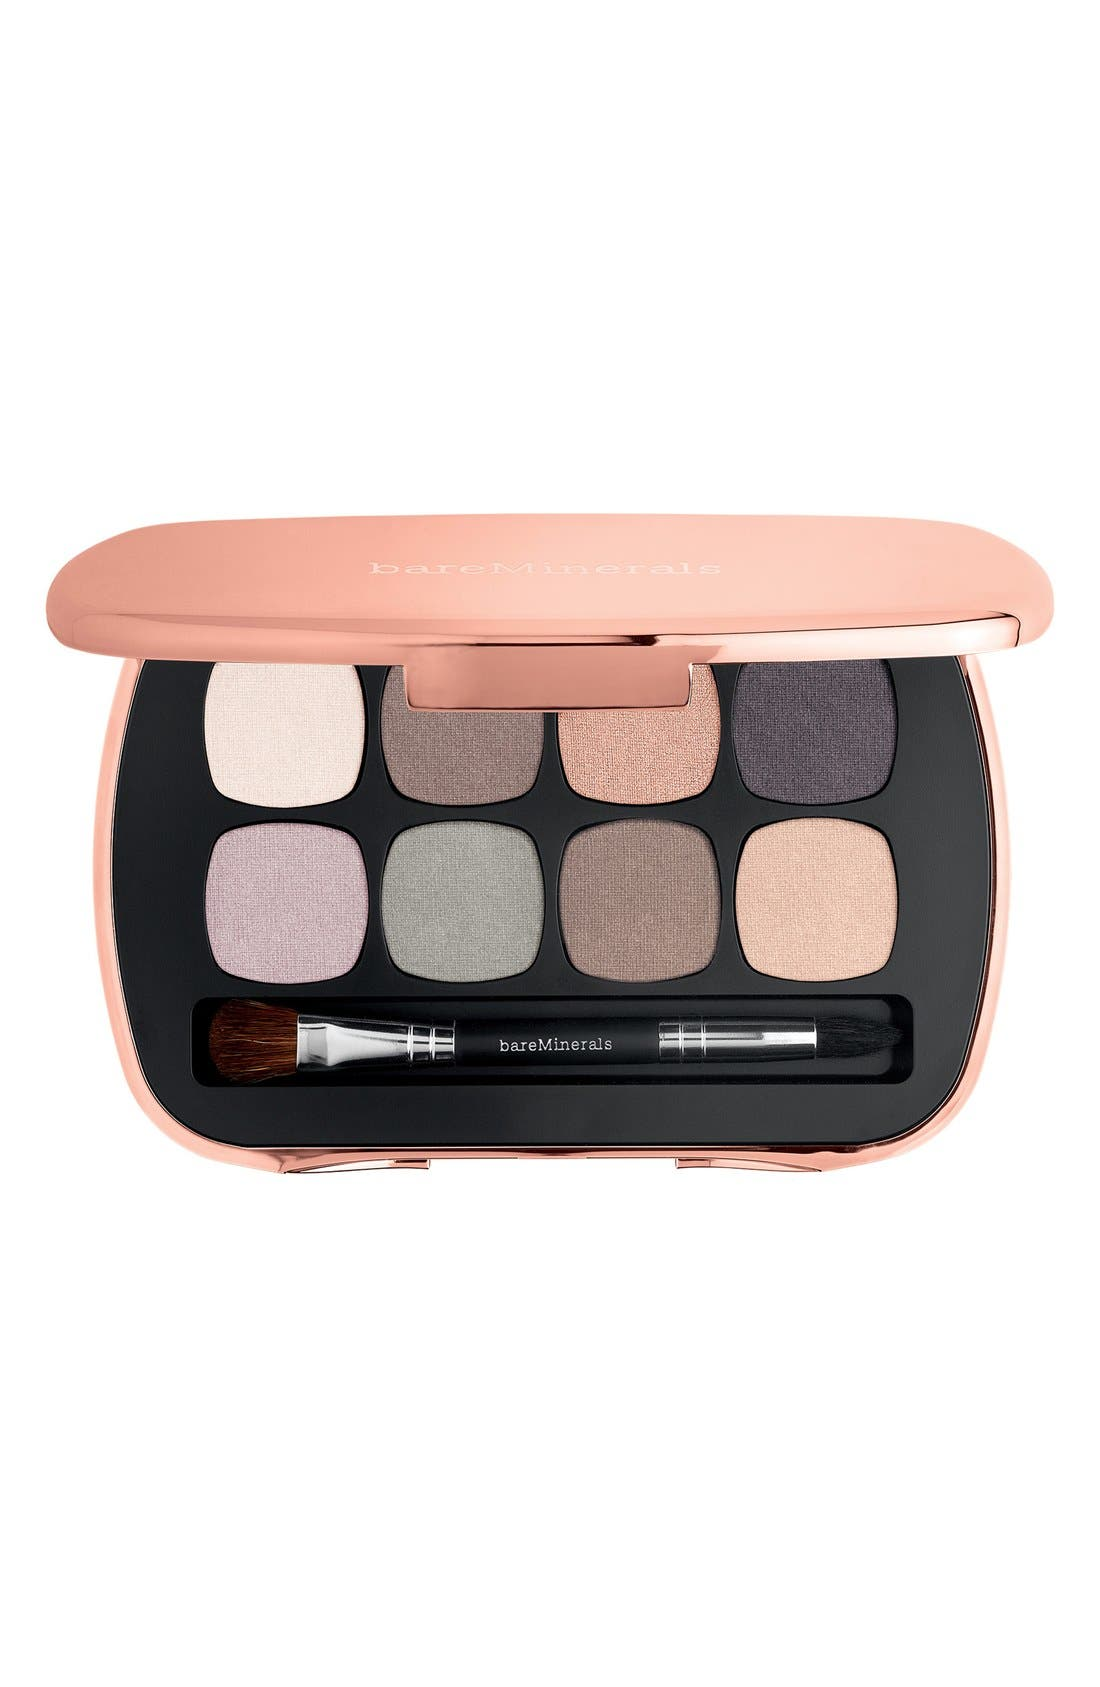 bareMinerals® READY 8.0 The Posh Neutrals Eyeshadow Palette